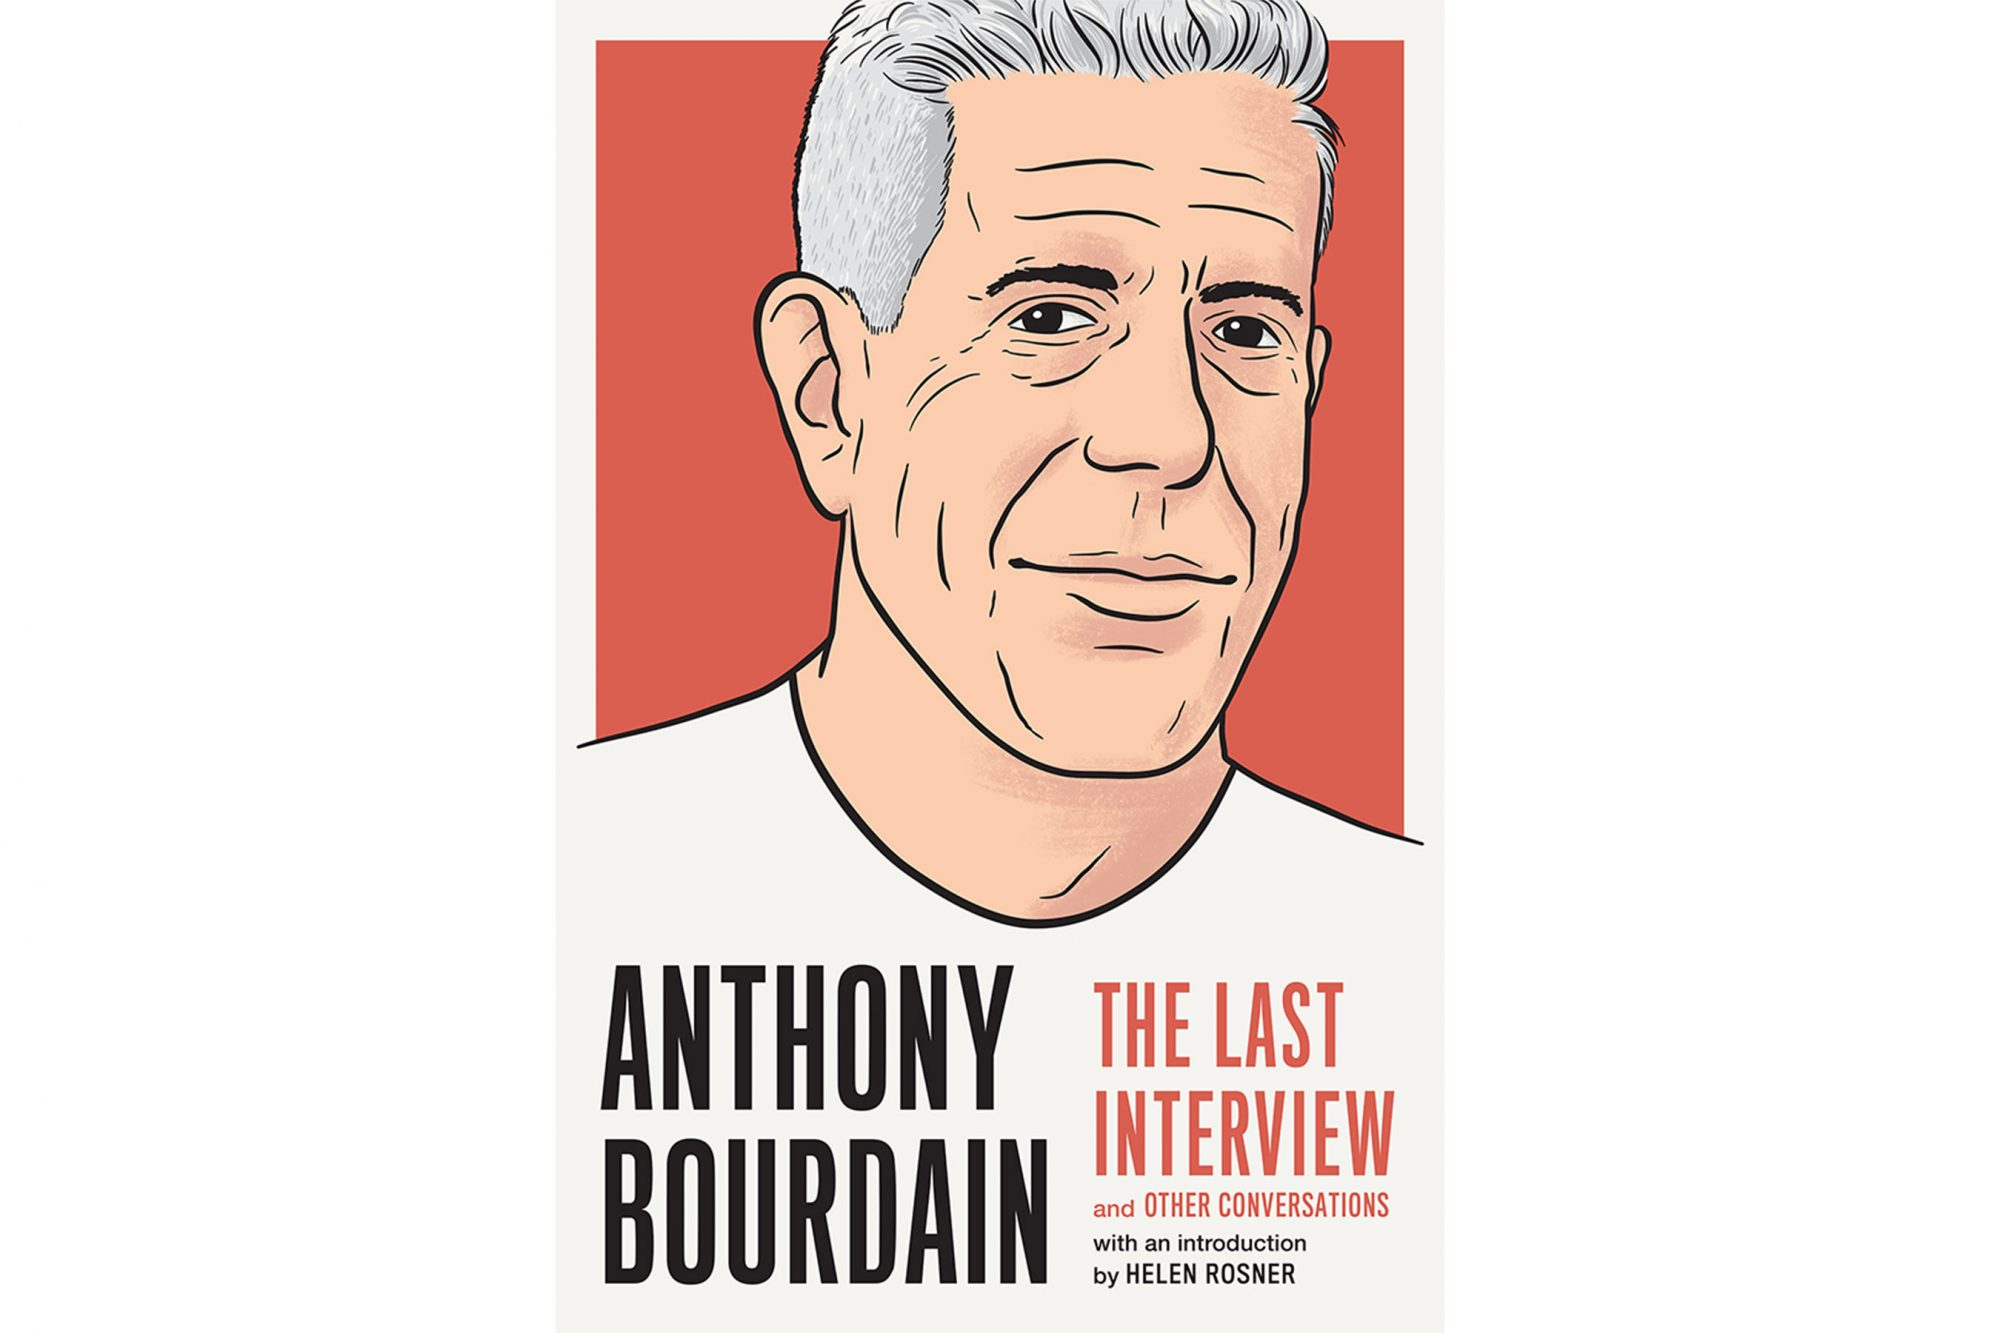 Anthony Bourdain The Last Interview by Helen Rosner